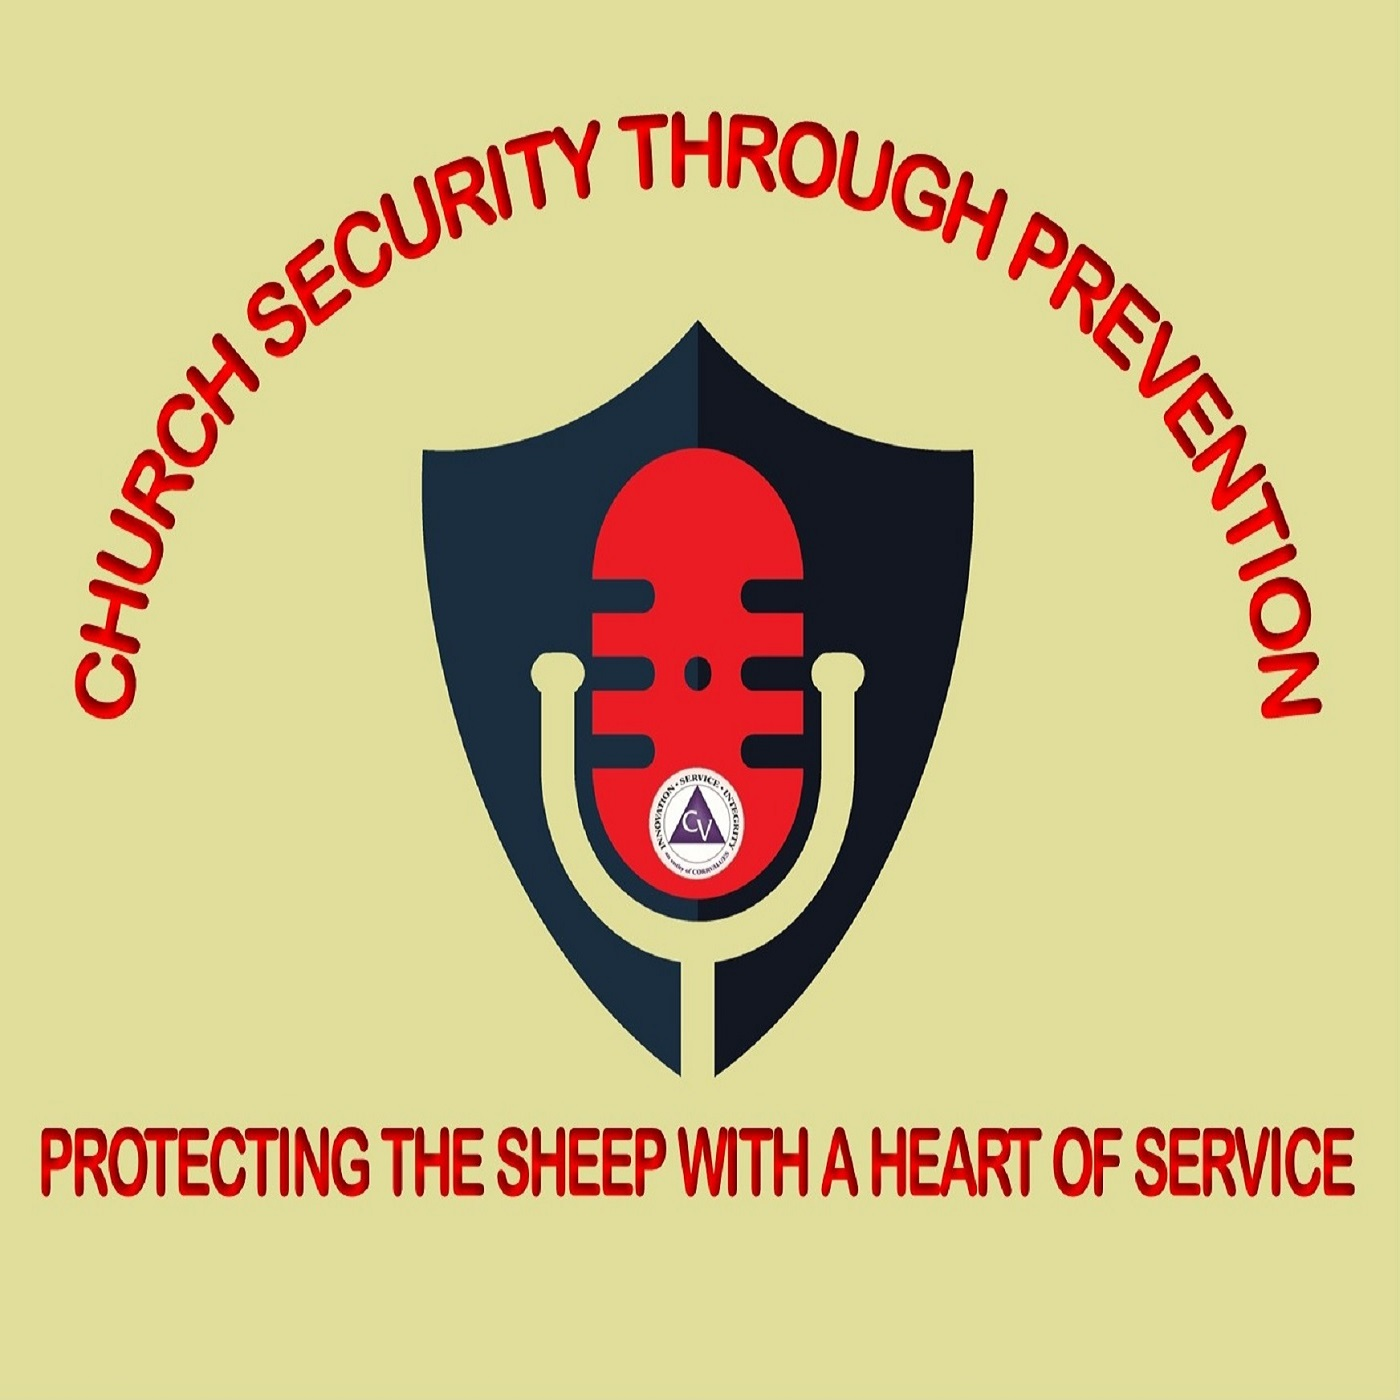 Church Security from Leadership with Jeff Grant Pt. 1 show art